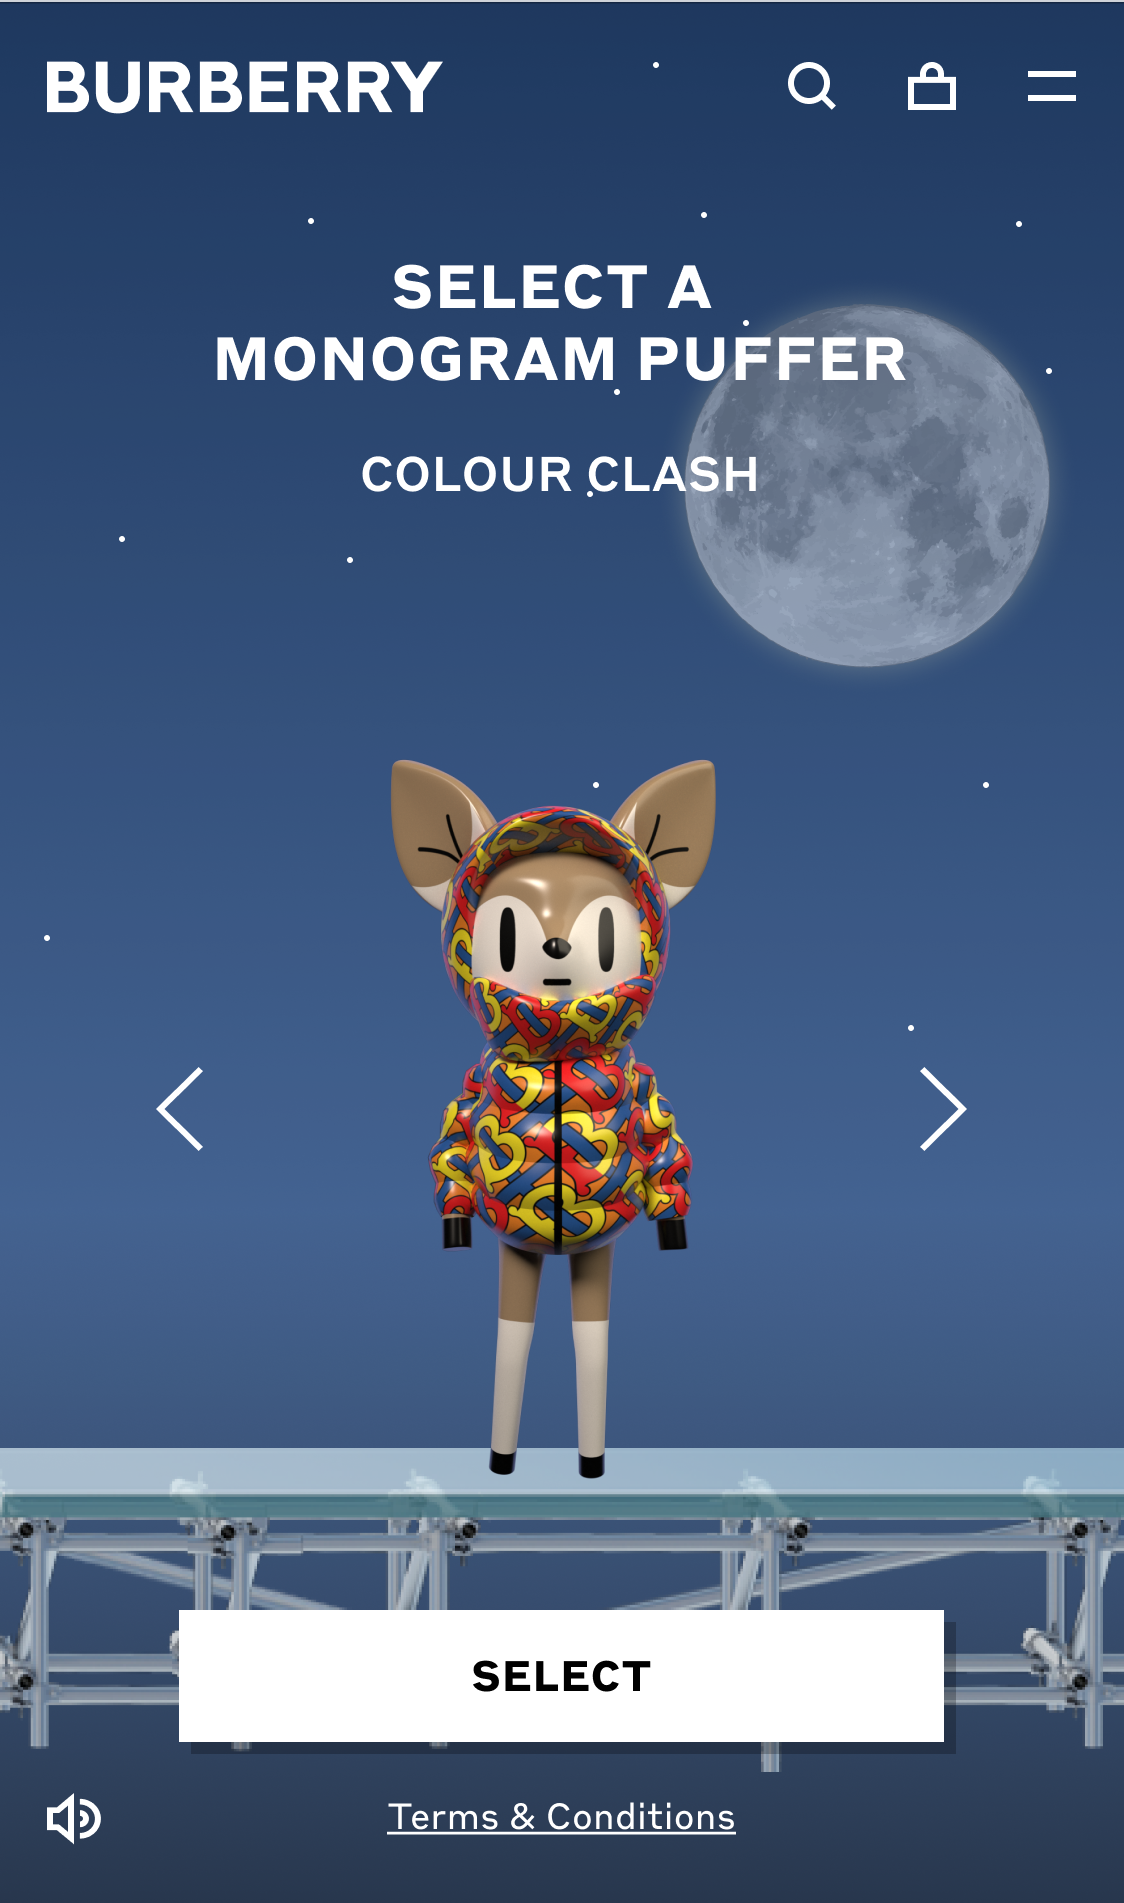 Burberry Launches Its First Online Game - B Bounce